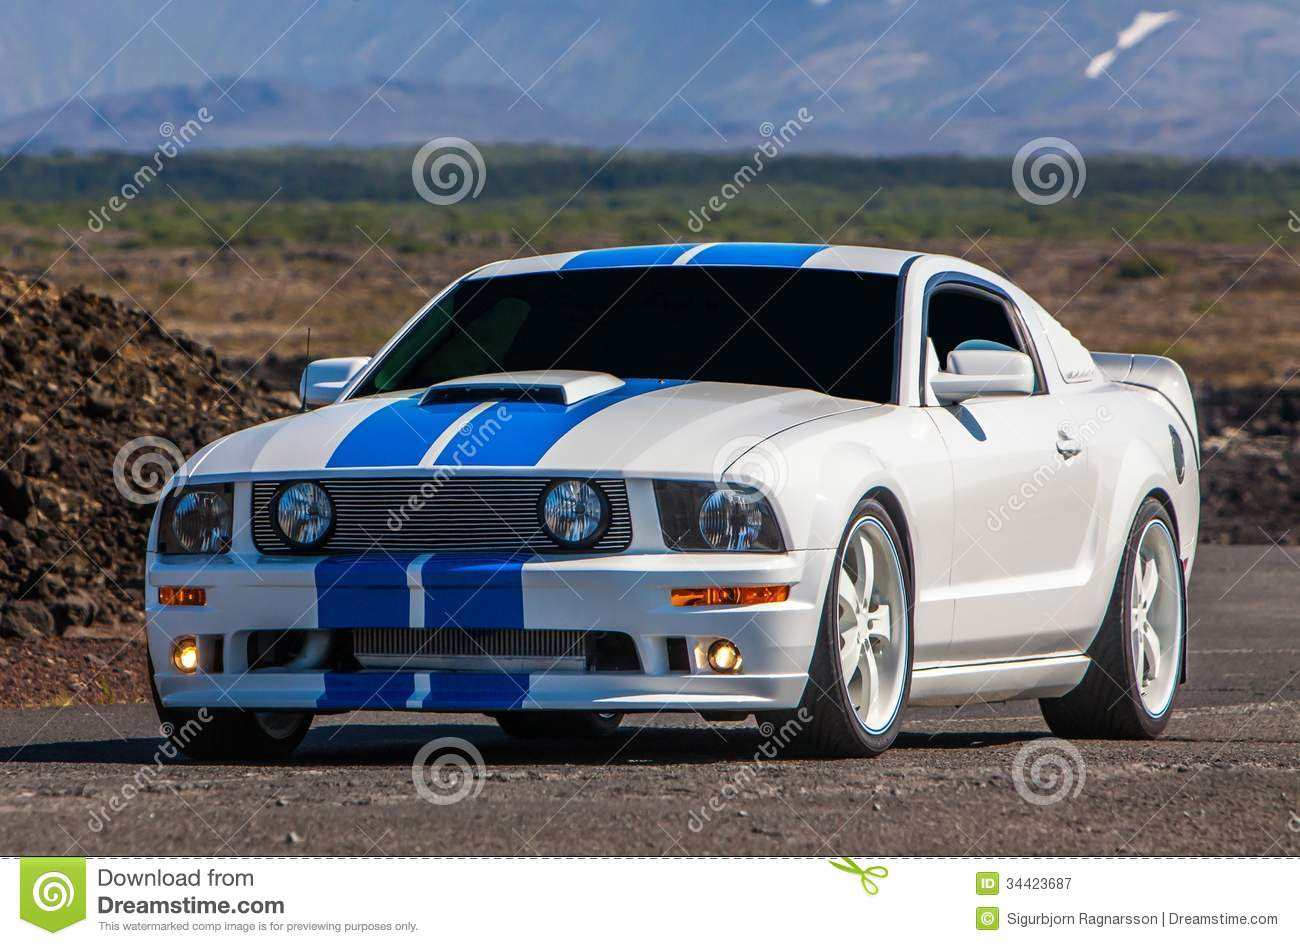 Ford Mustang GT Procharger